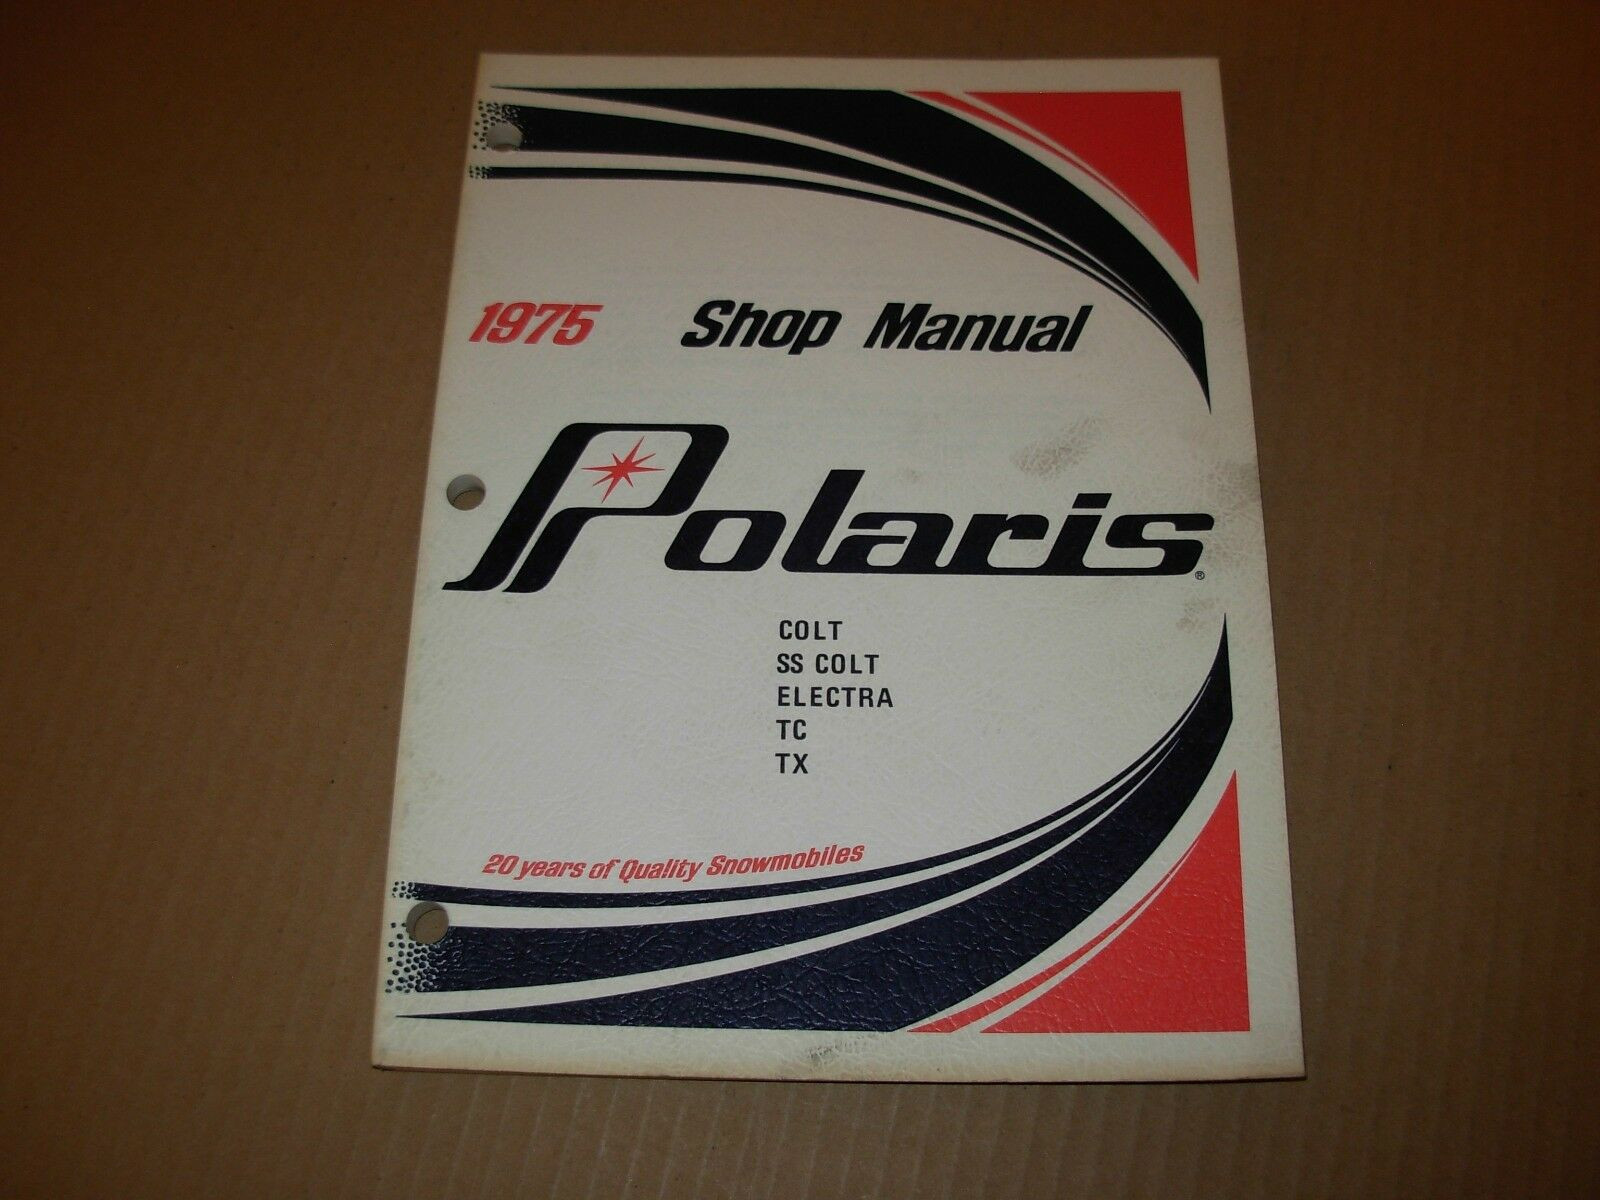 1975 Polaris Colt SS Colt Electra TC TX Snowmobile Shop Service Manual